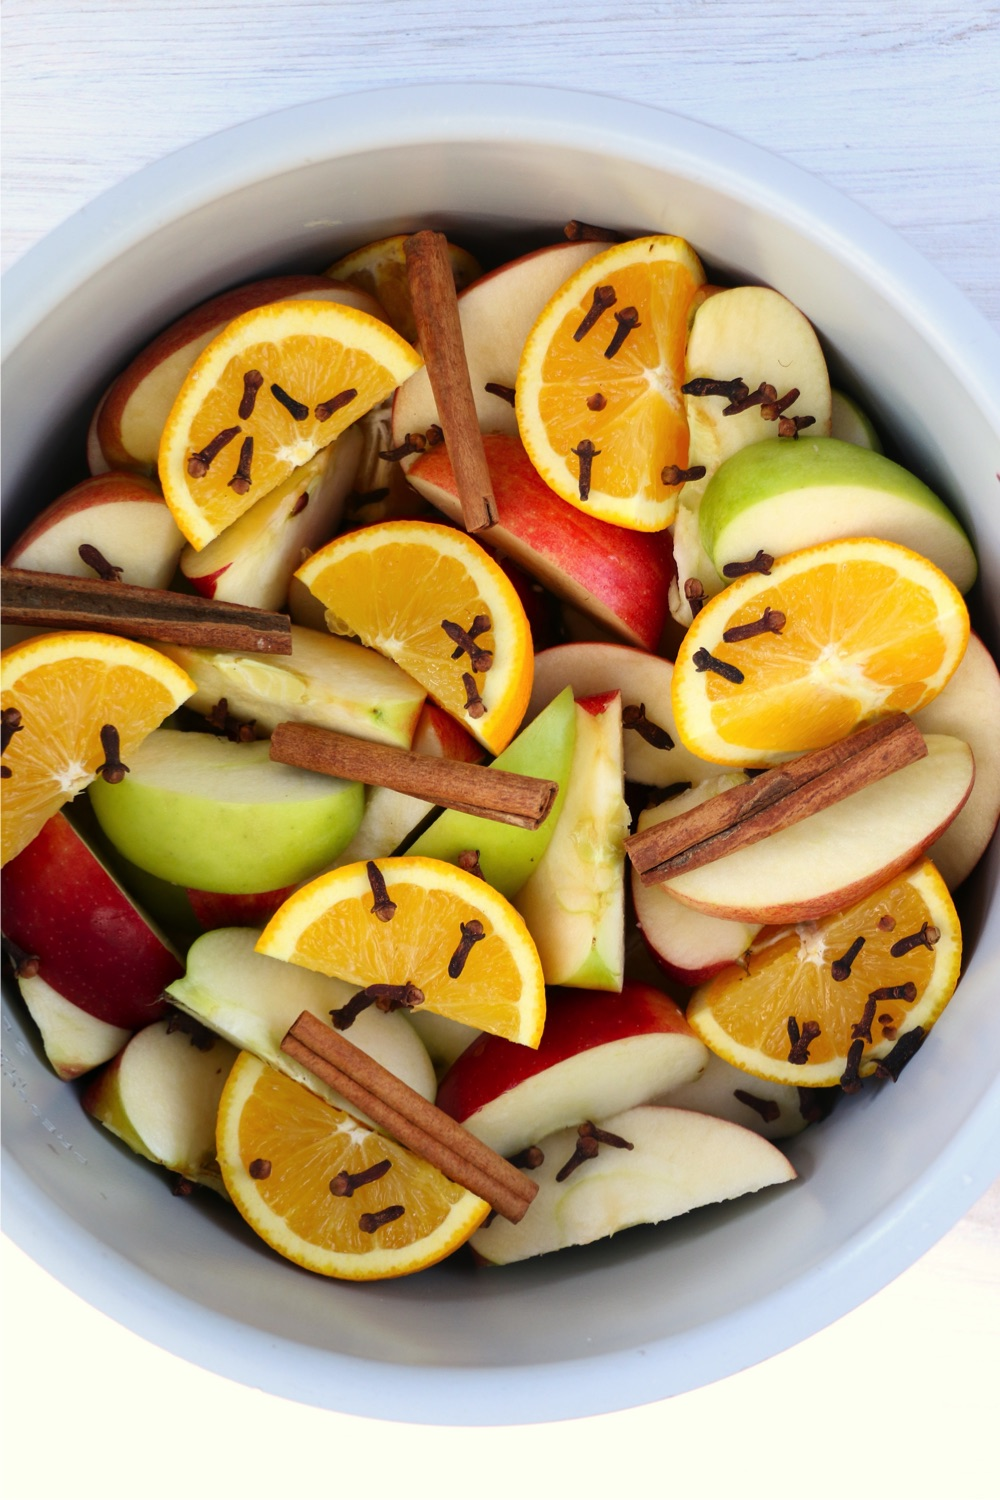 Ninja Foodi cooking pot filled with fresh fruit slices, cloves and cinnamon sticks